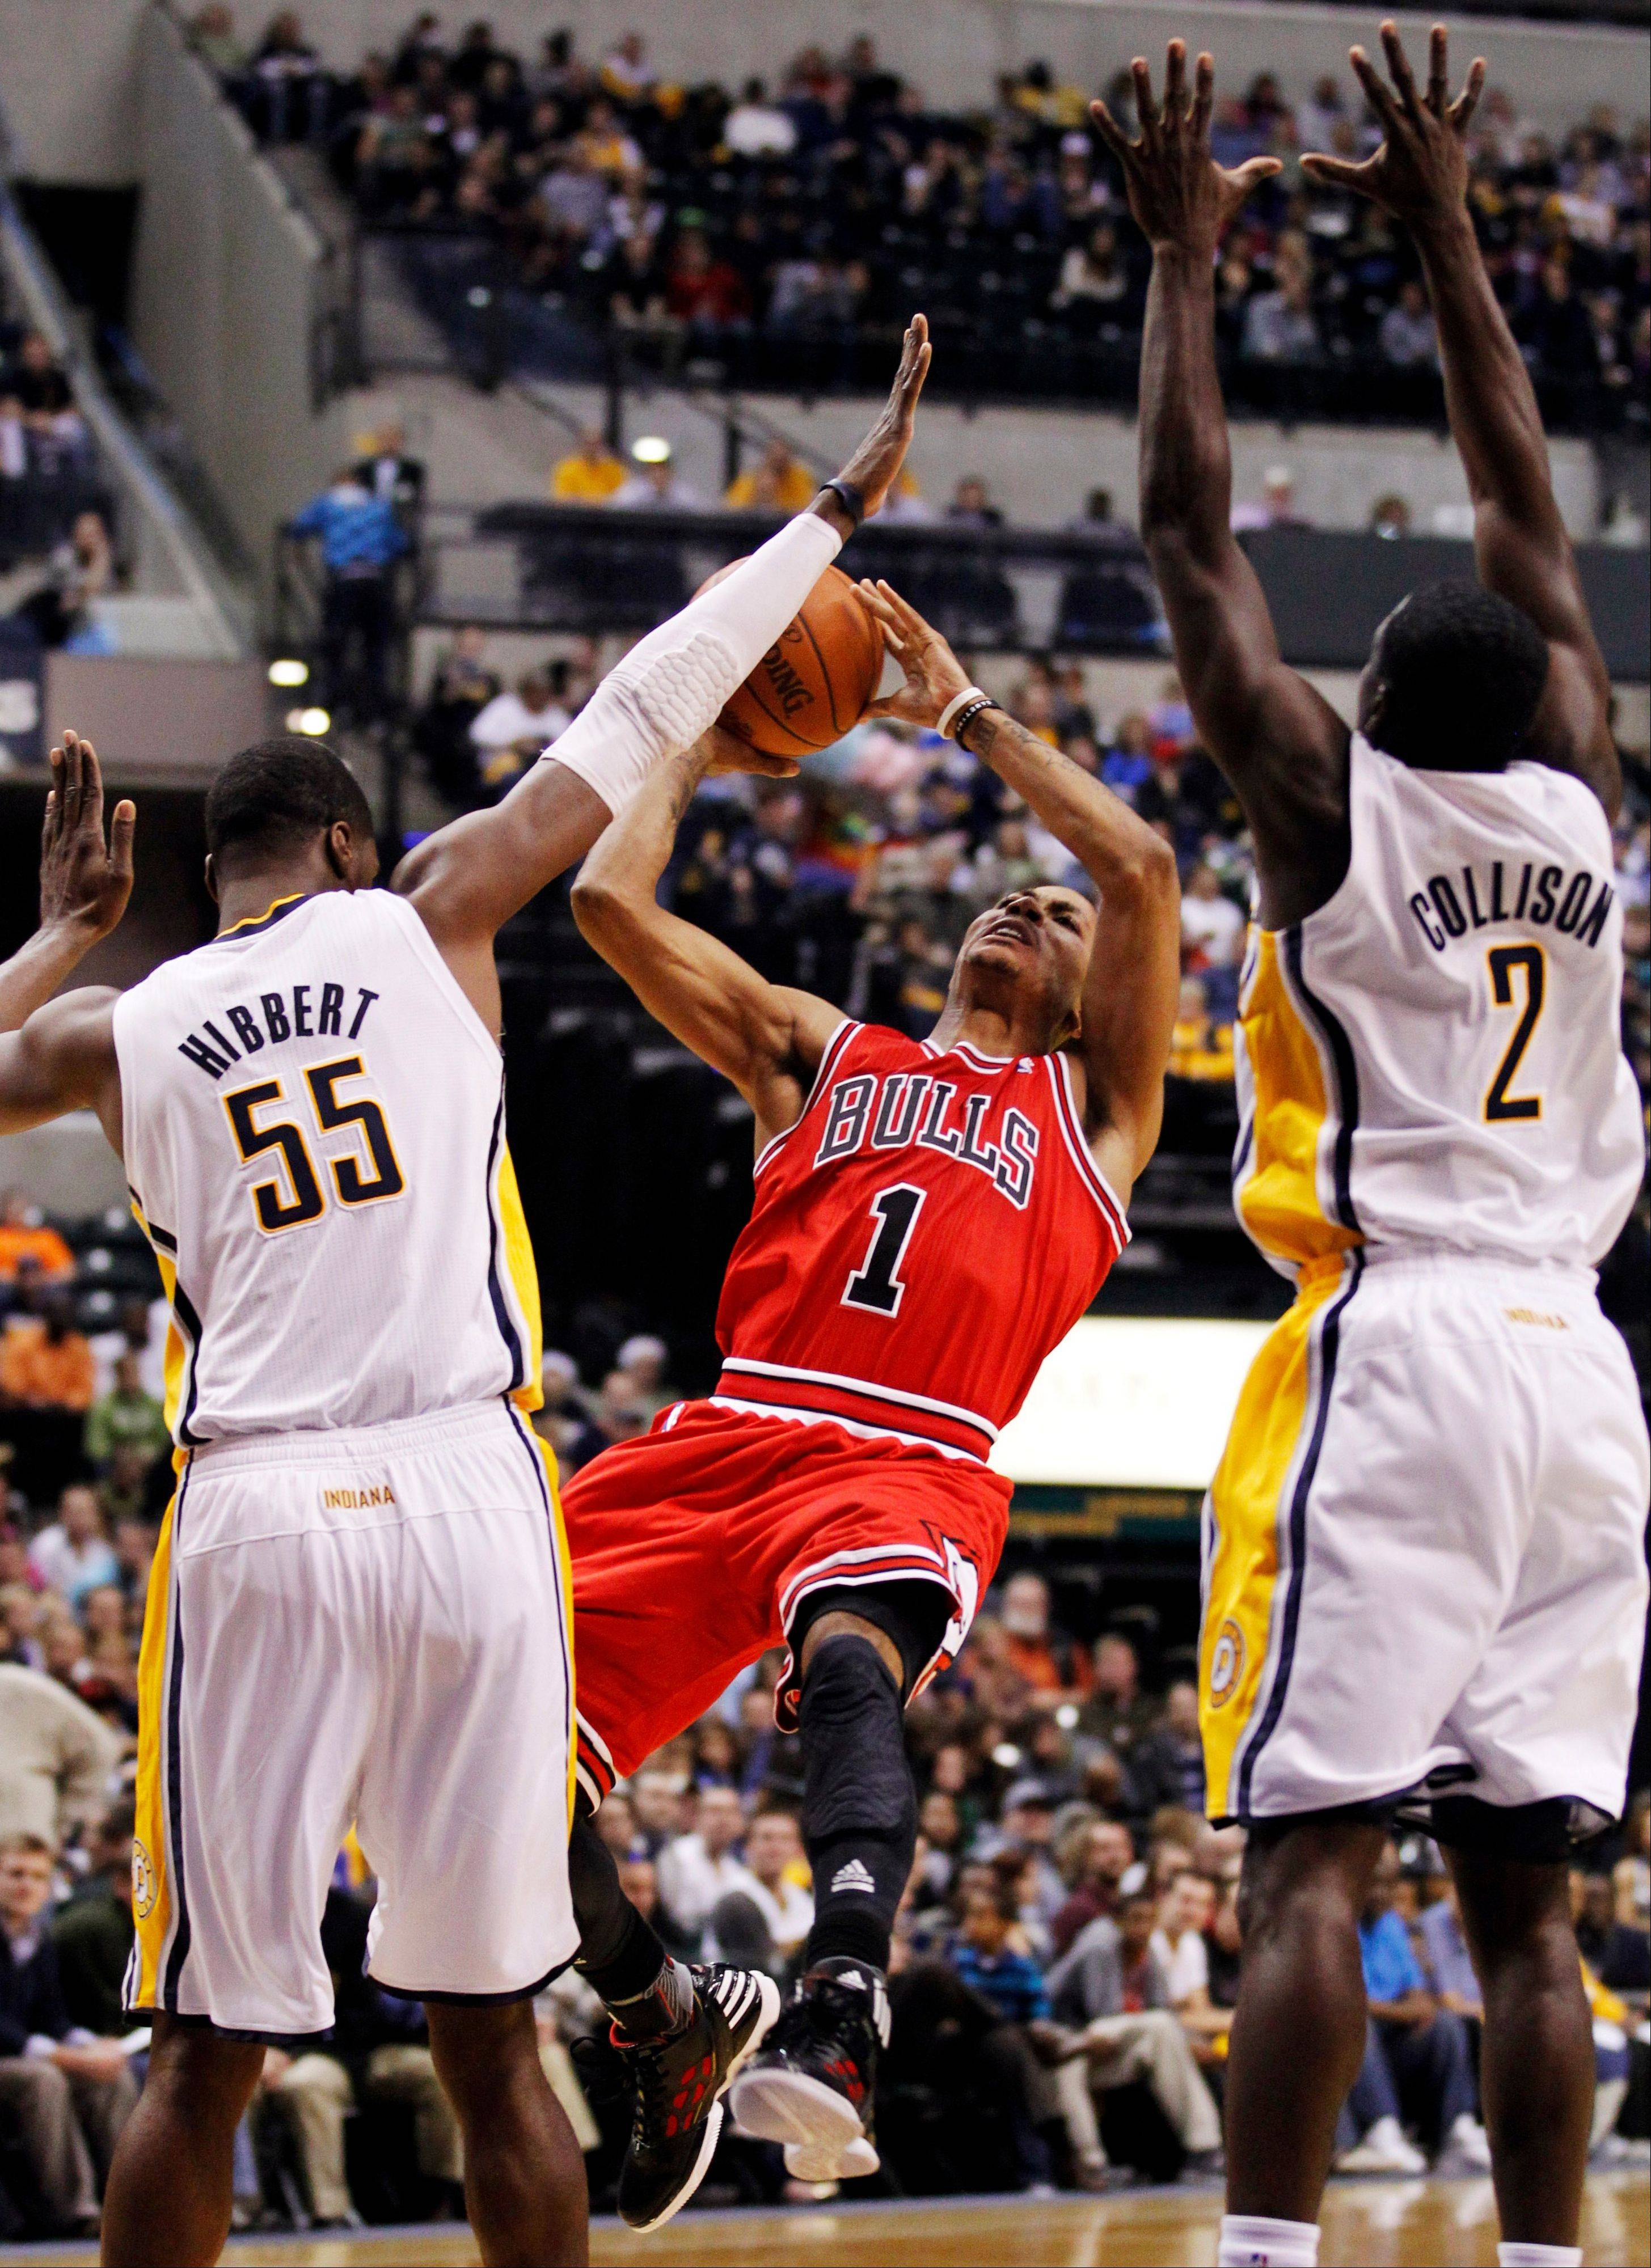 Derrick Rose scored 16 to help the Bulls beat the Indiana Pacers Friday night in Indianapolis in both teams preseason opener.